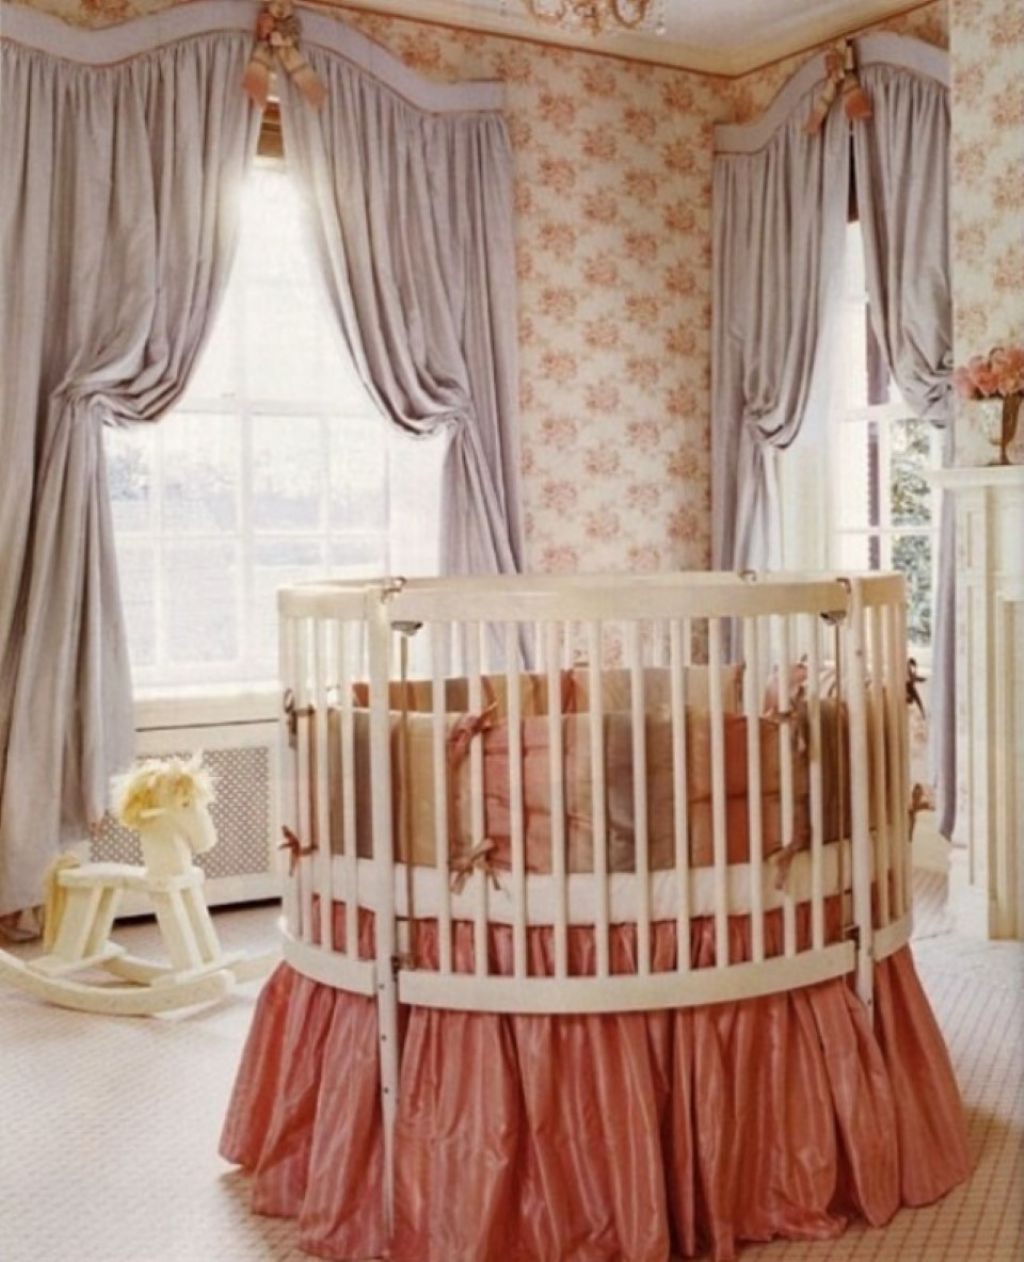 Modern And Stylish Round Baby Crib For Your Nursery Round baby